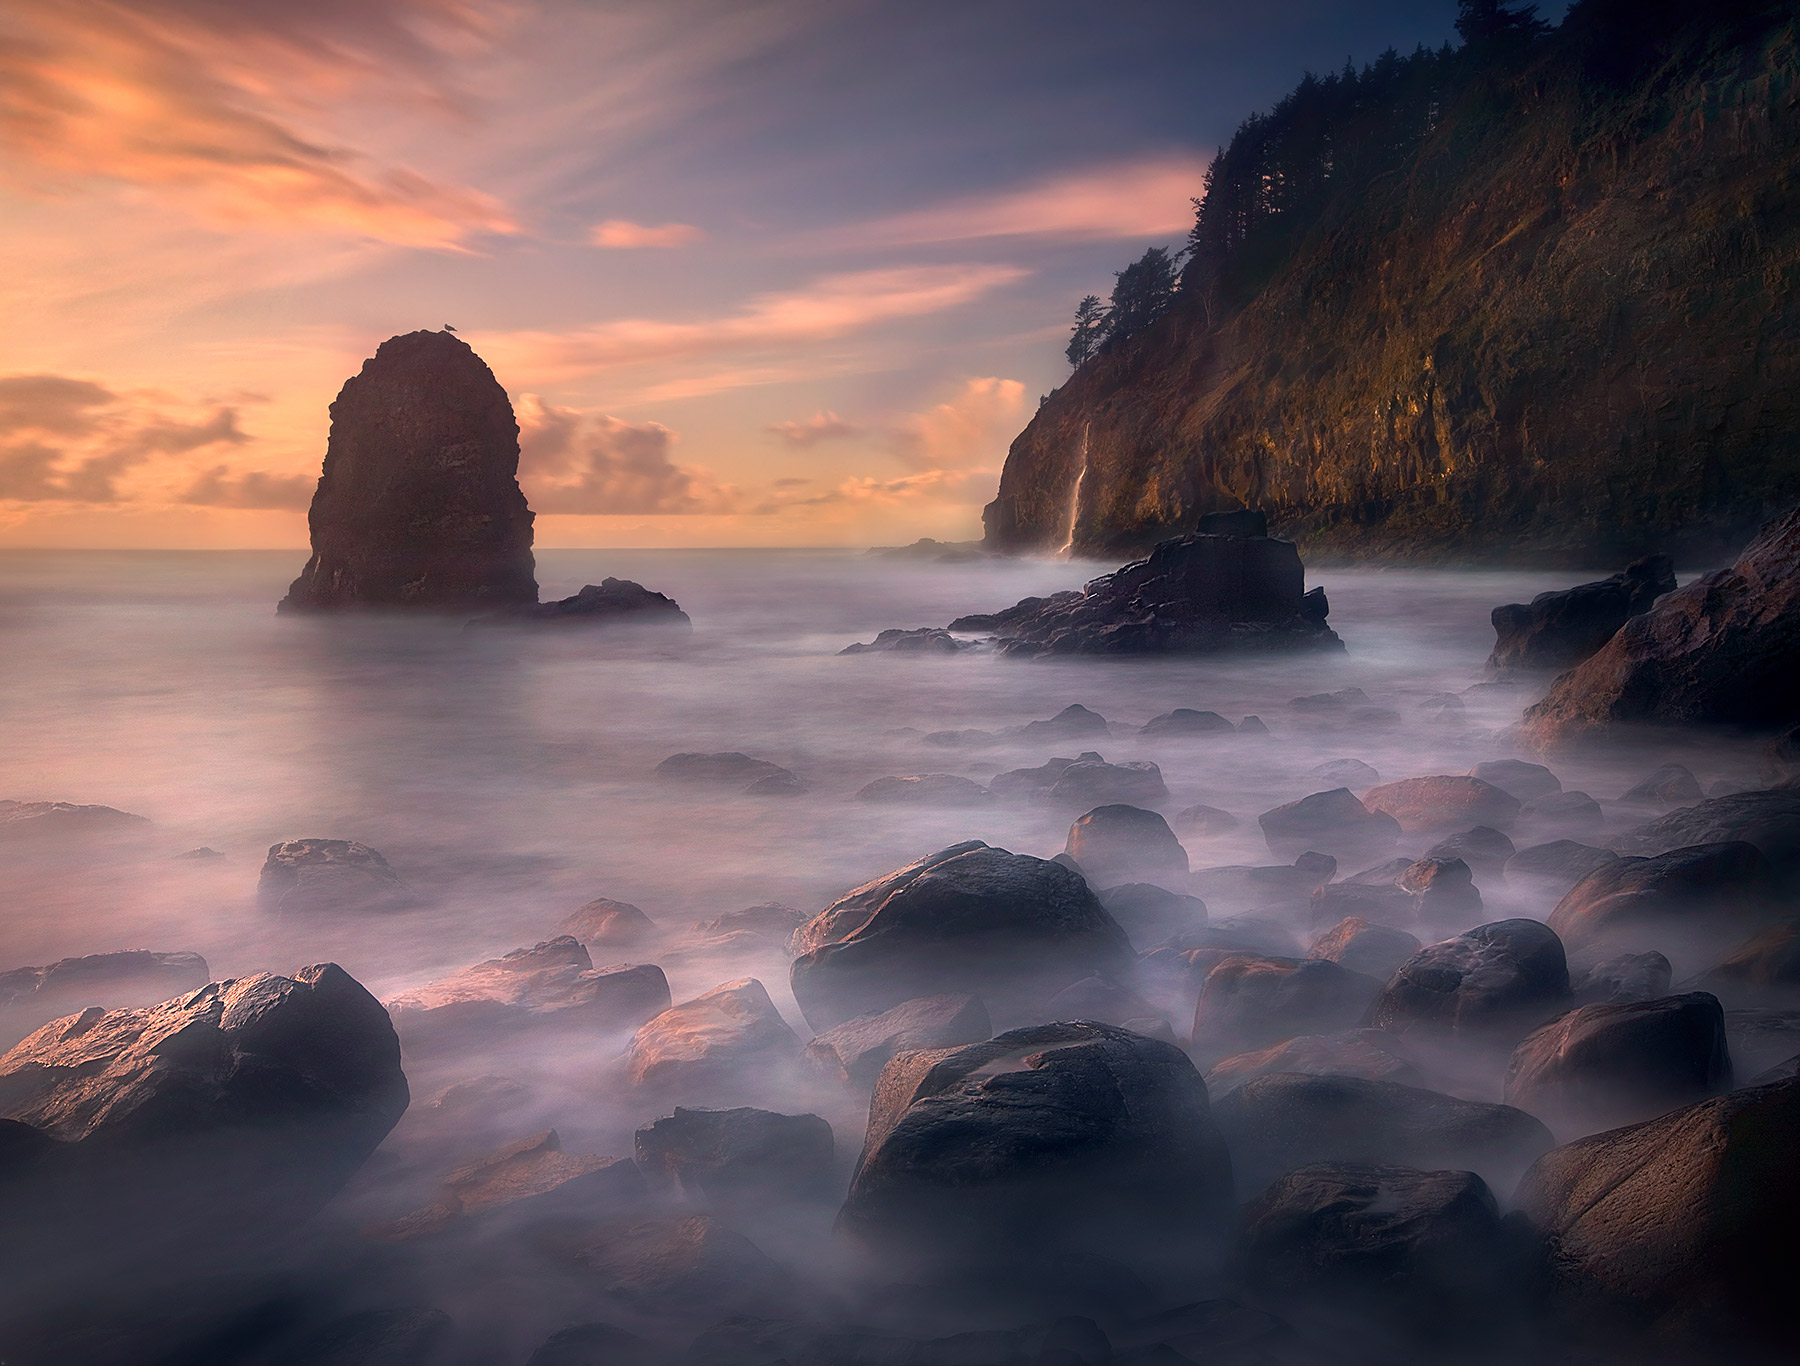 Long exposure, coast, oregon, pacific, sunset, waterfall, cape, photo